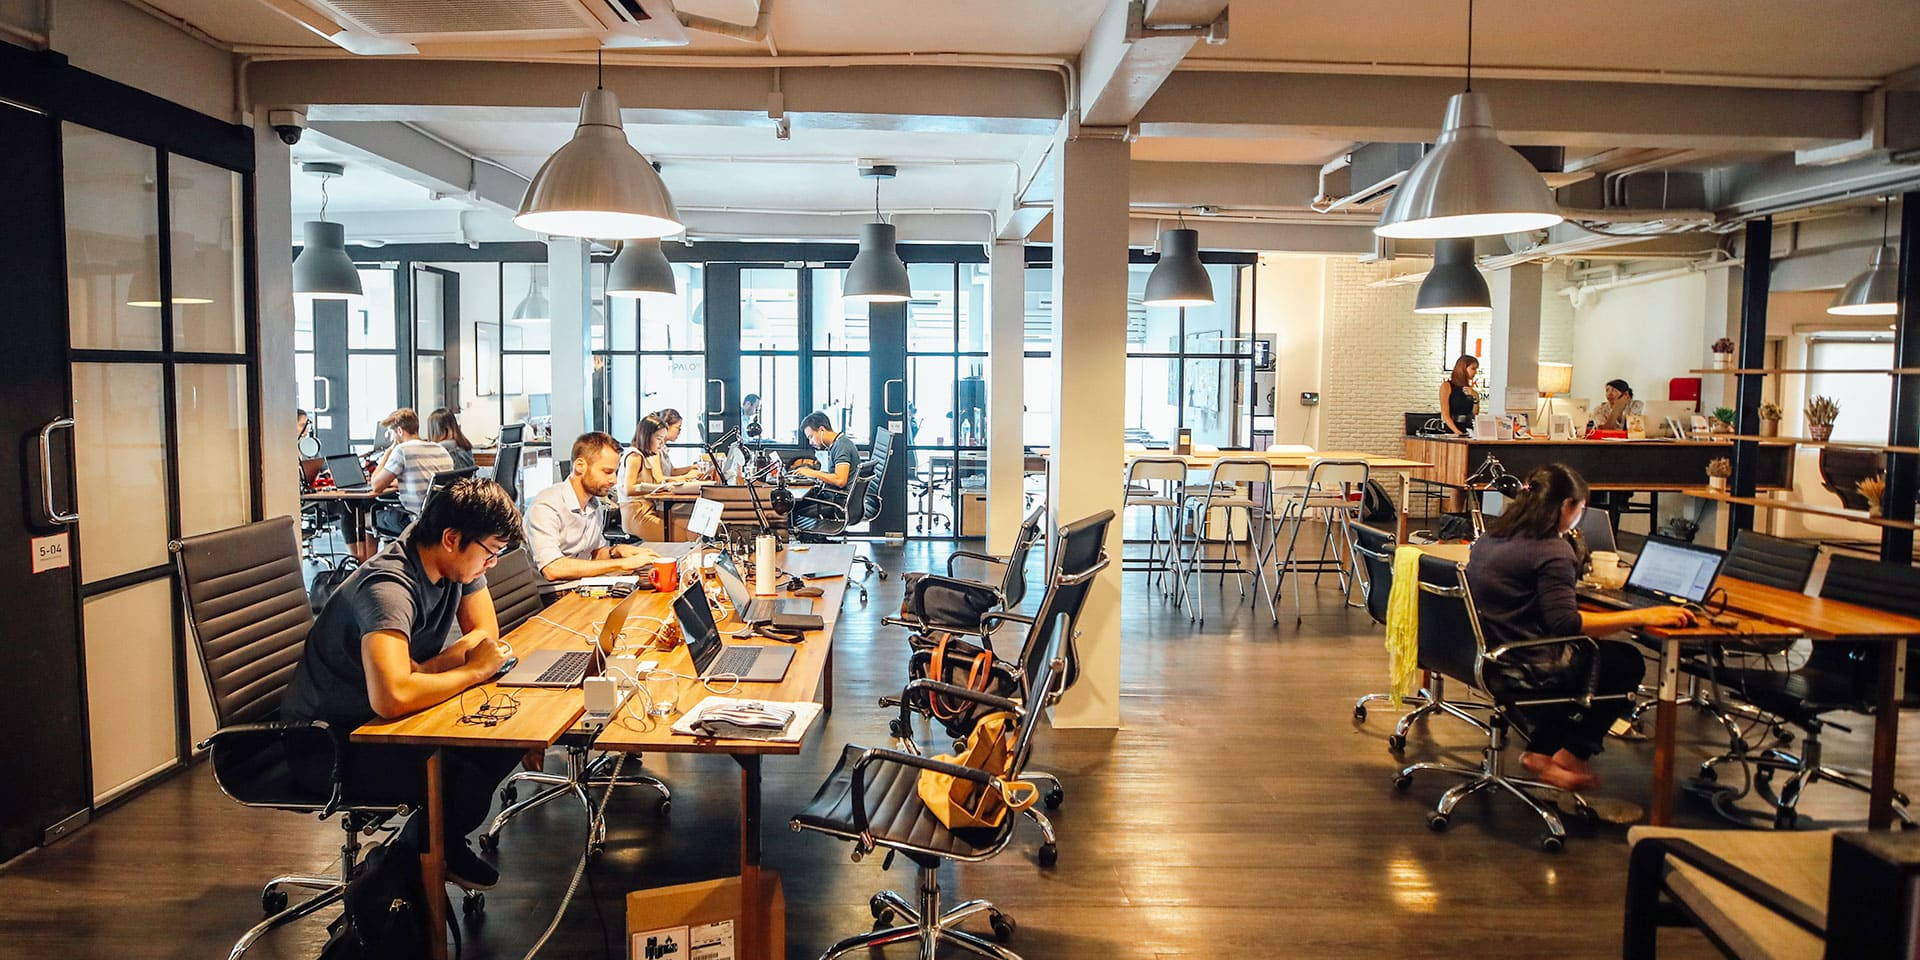 How renting a private office in a coworking building can save you money